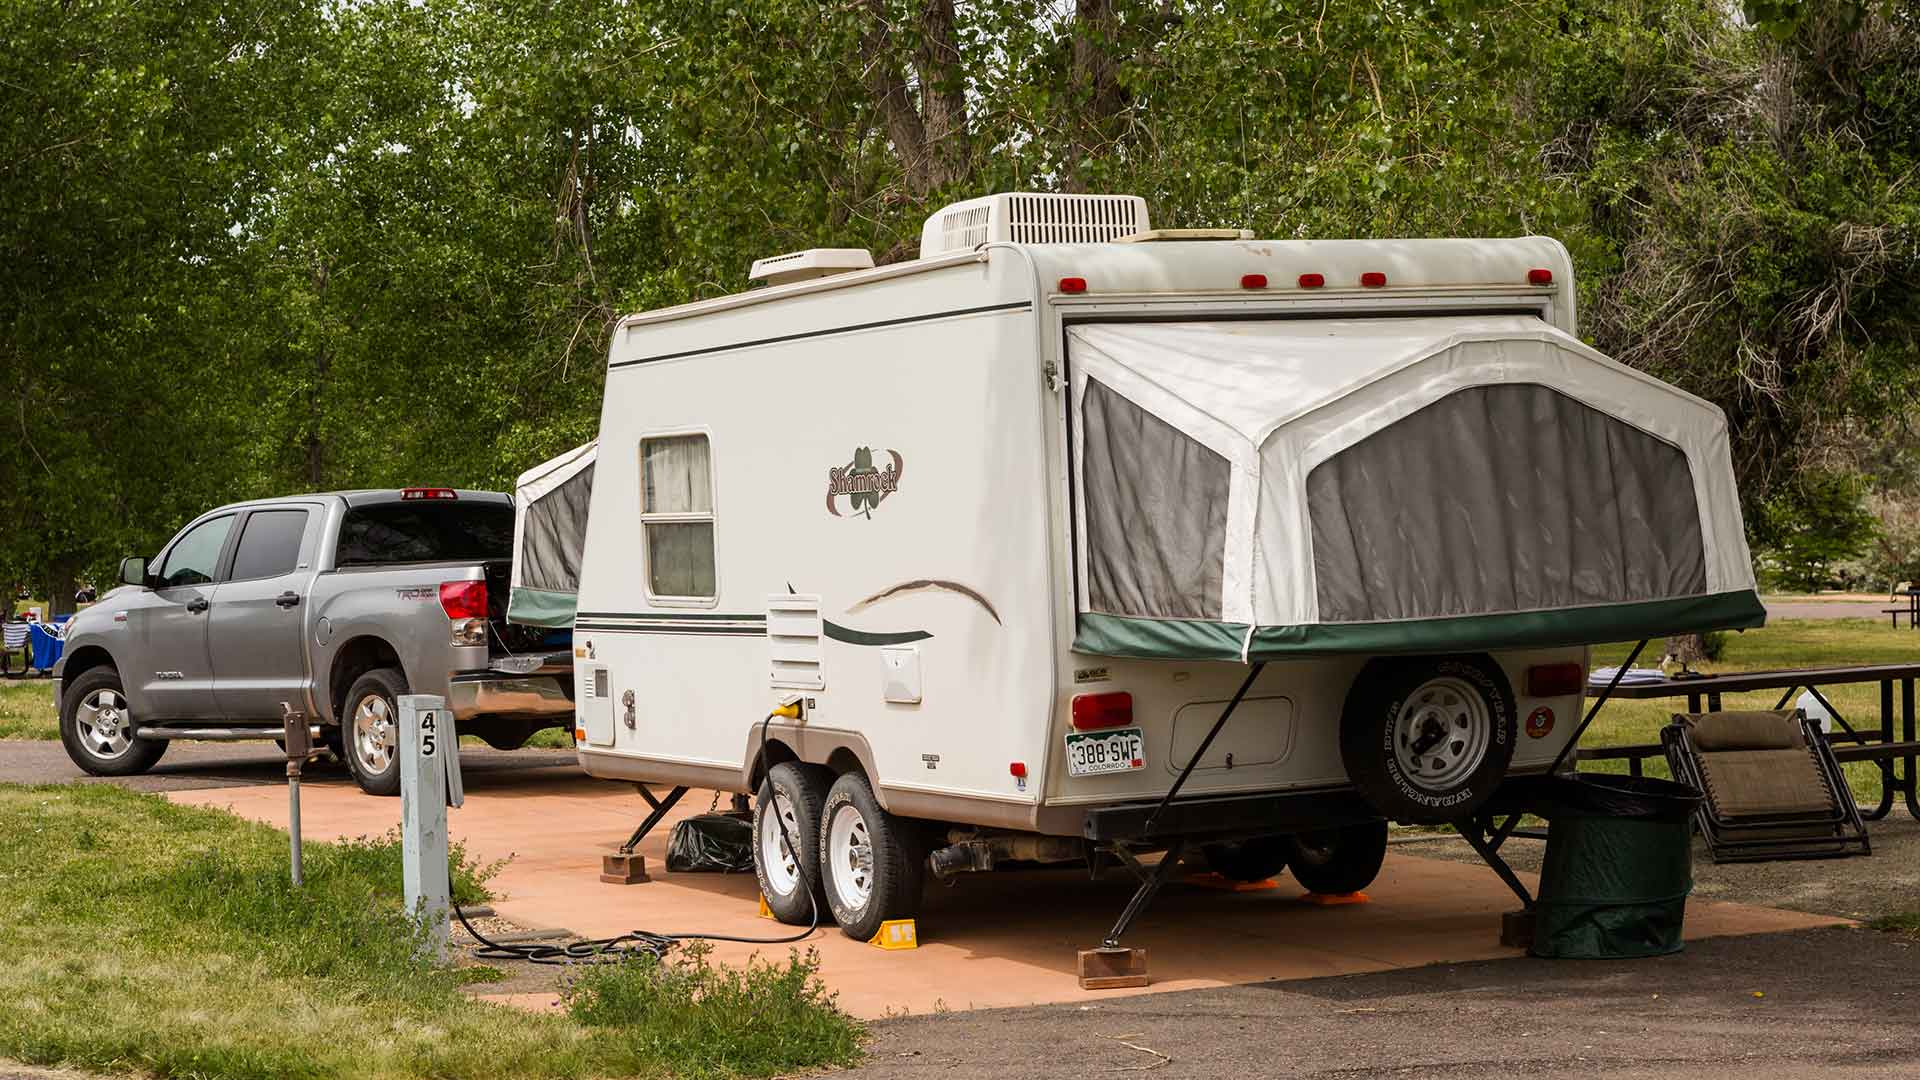 RM RV Service Inc. Mobile RV Repair, Mobile RV Service and RV Inspections